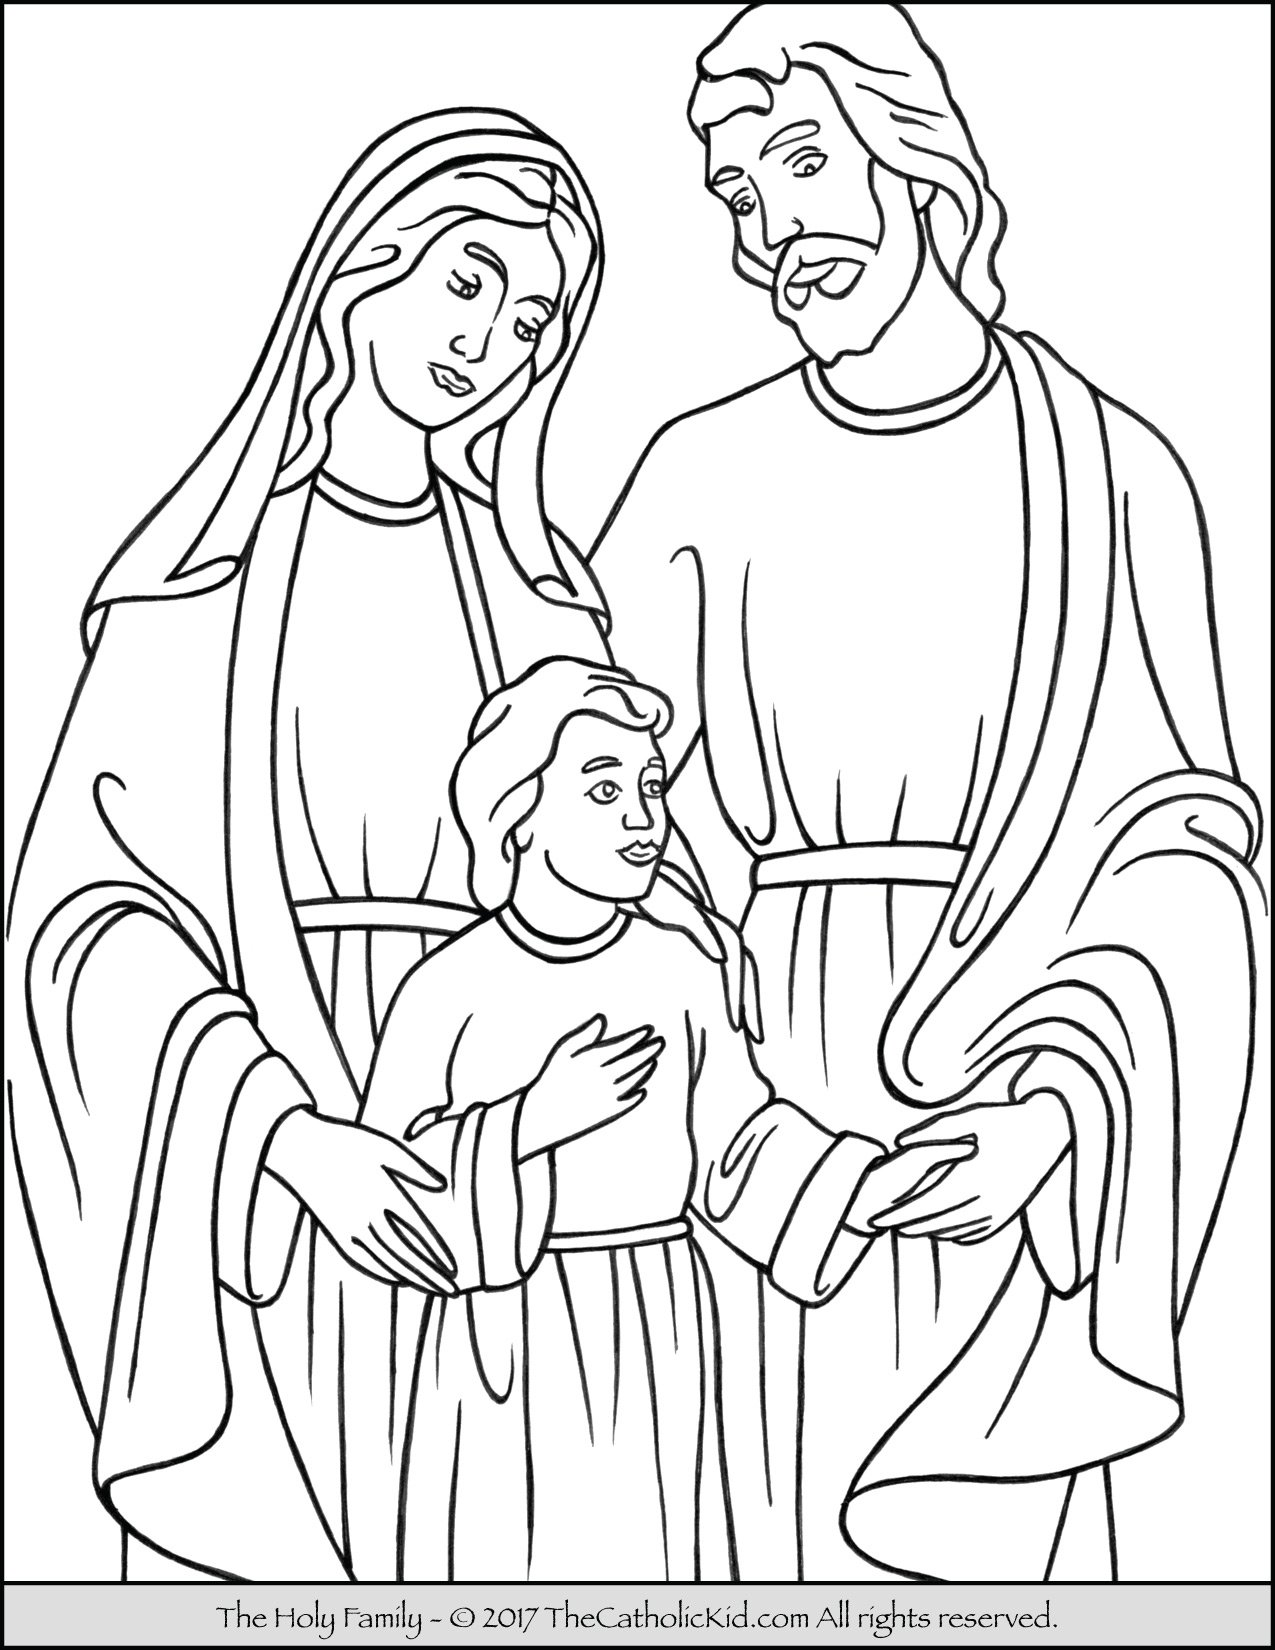 Holy Family Coloring Page - TheCatholicKid.com